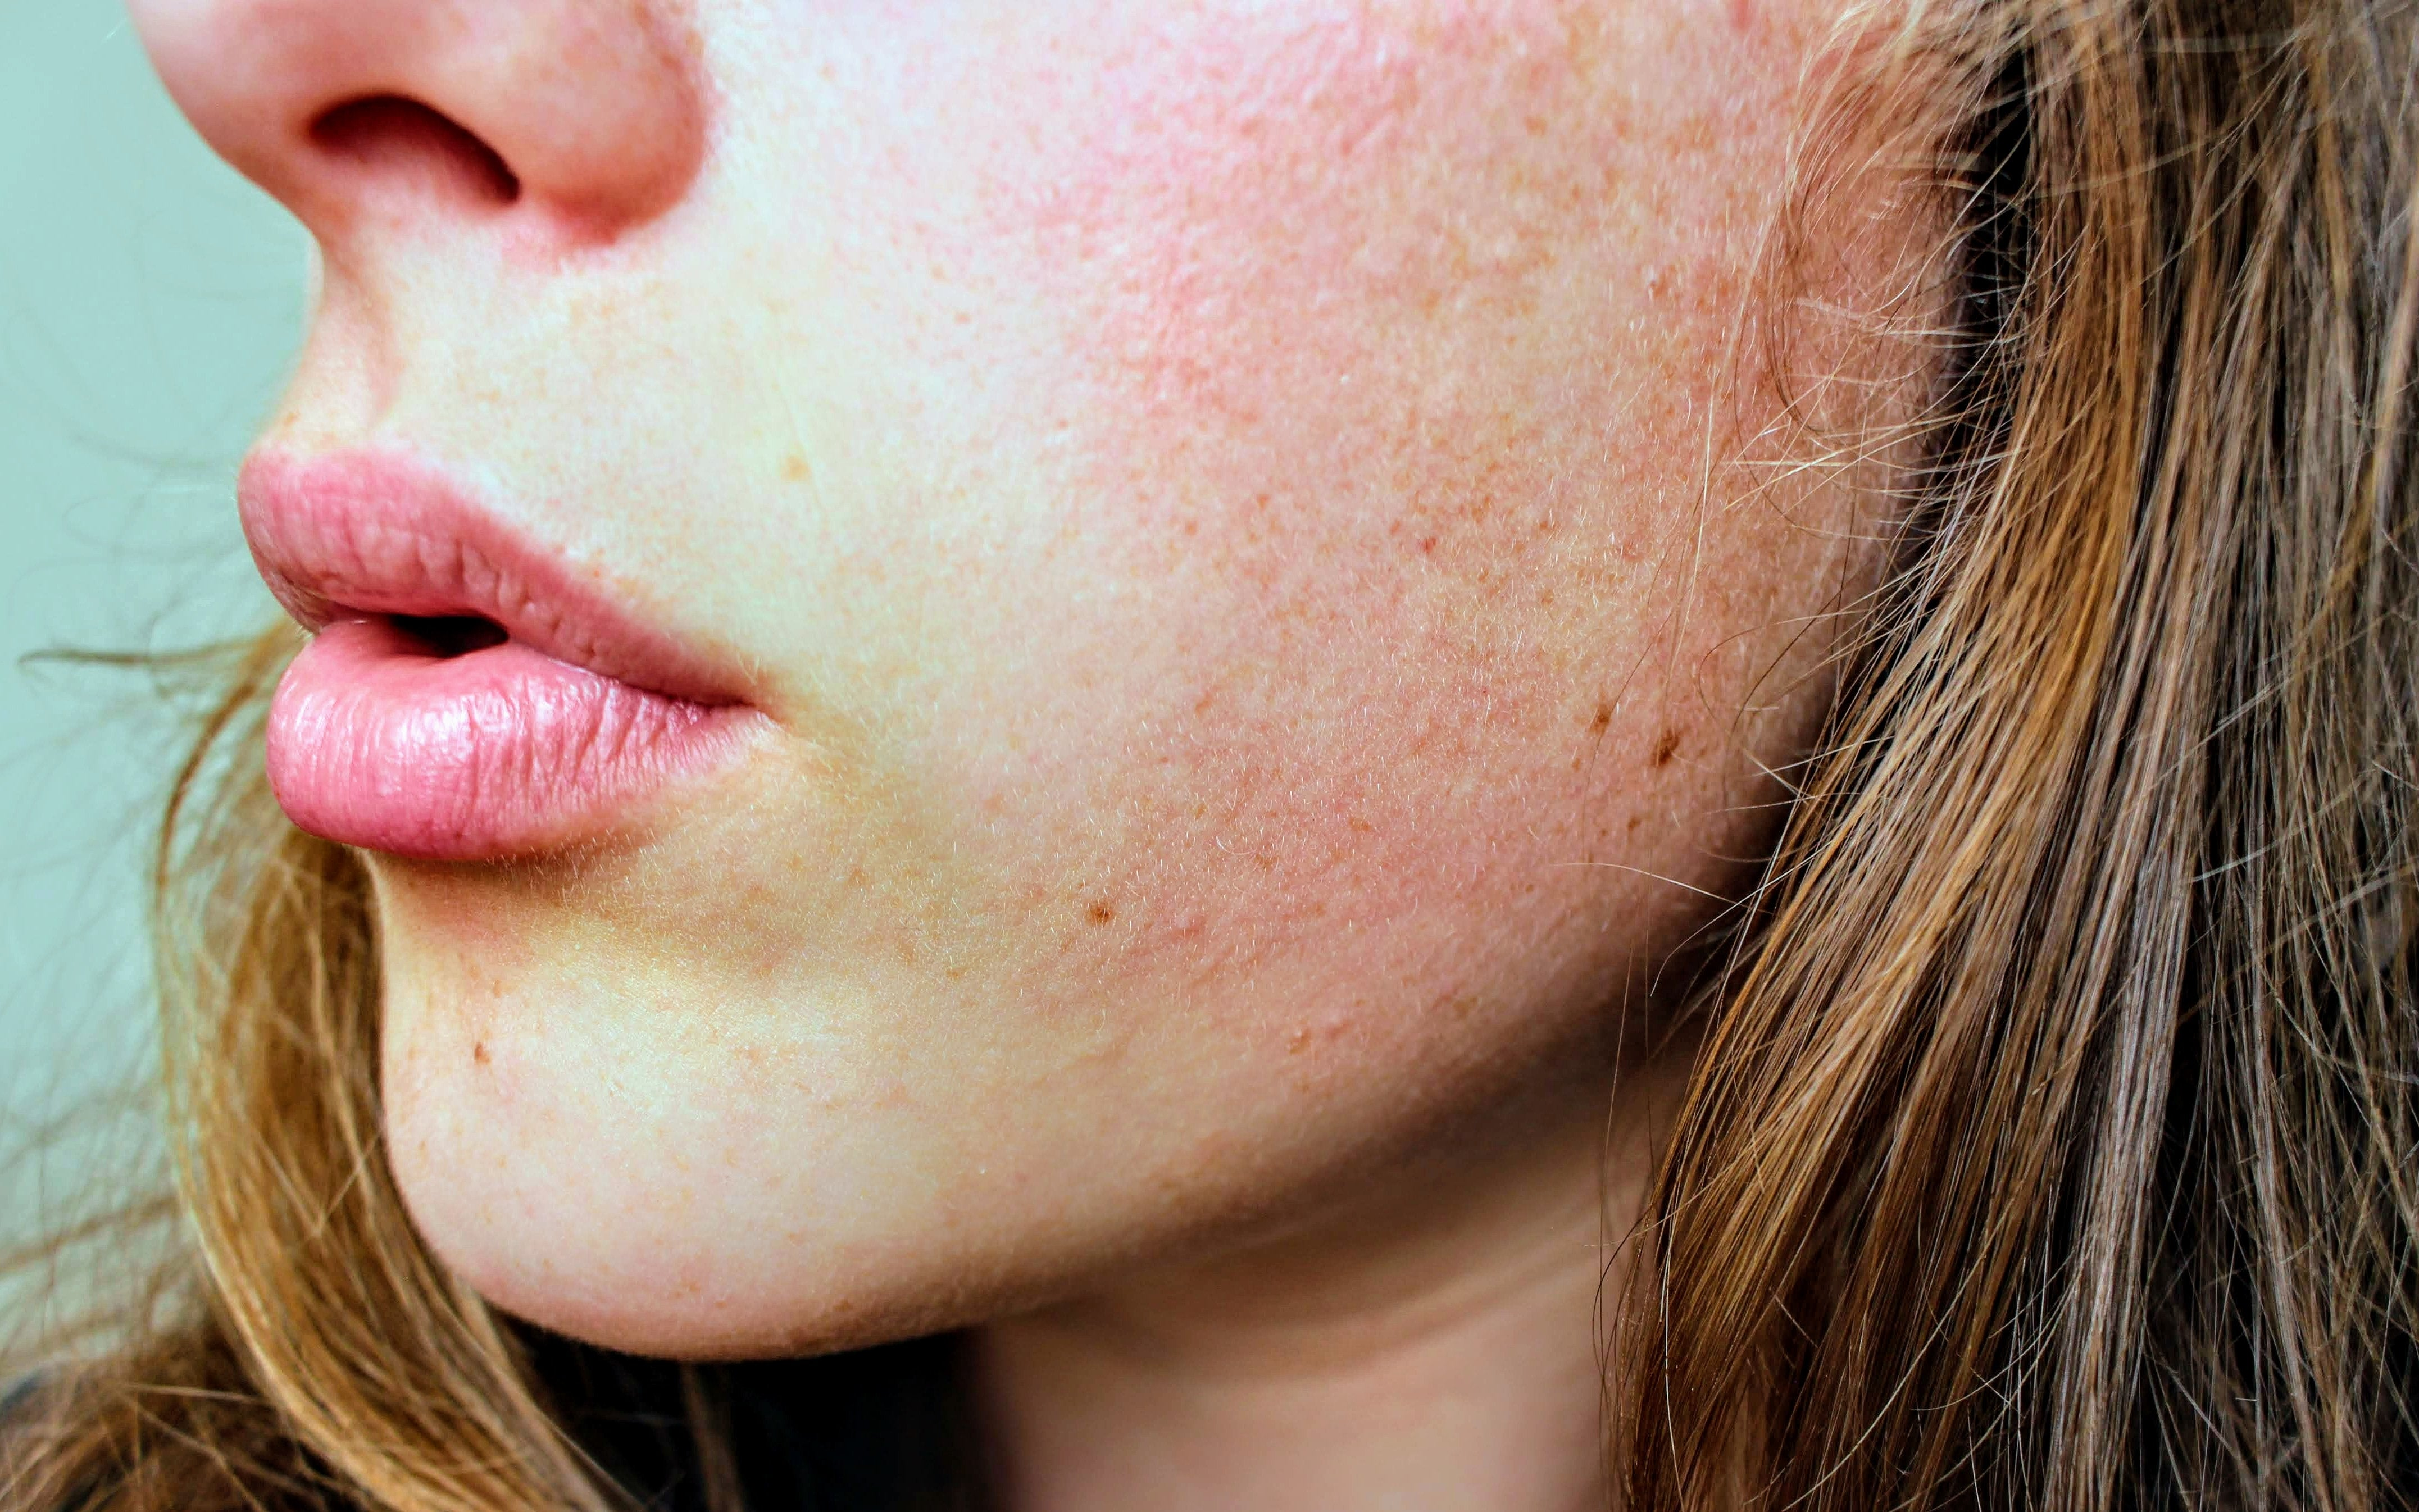 dry skin of a woman's face